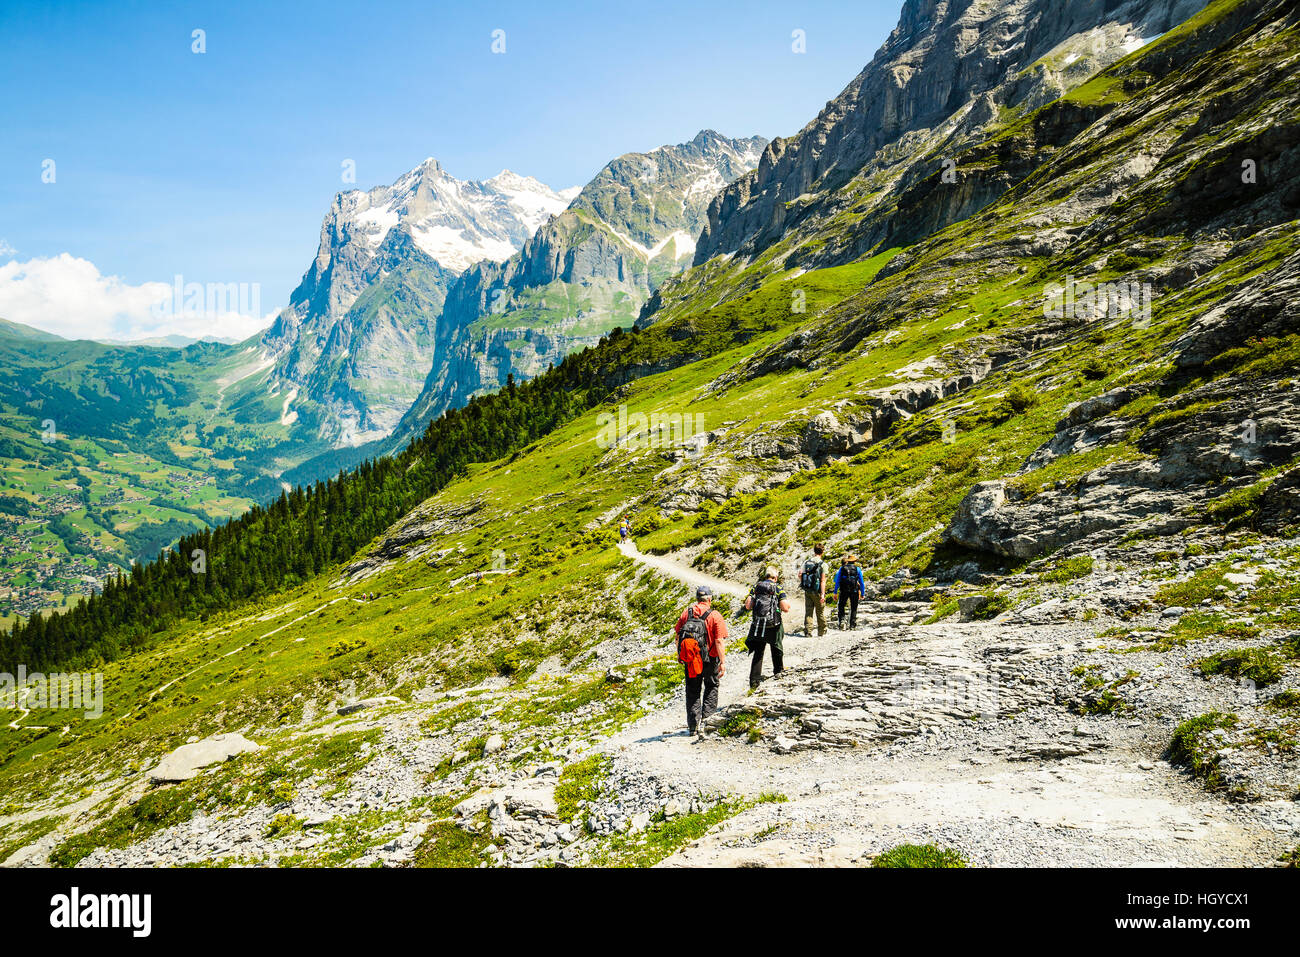 Hikers on the Eiger Trail Switzerland with the Grindelwald valley below and the Wetterhorn peak behind - Stock Image